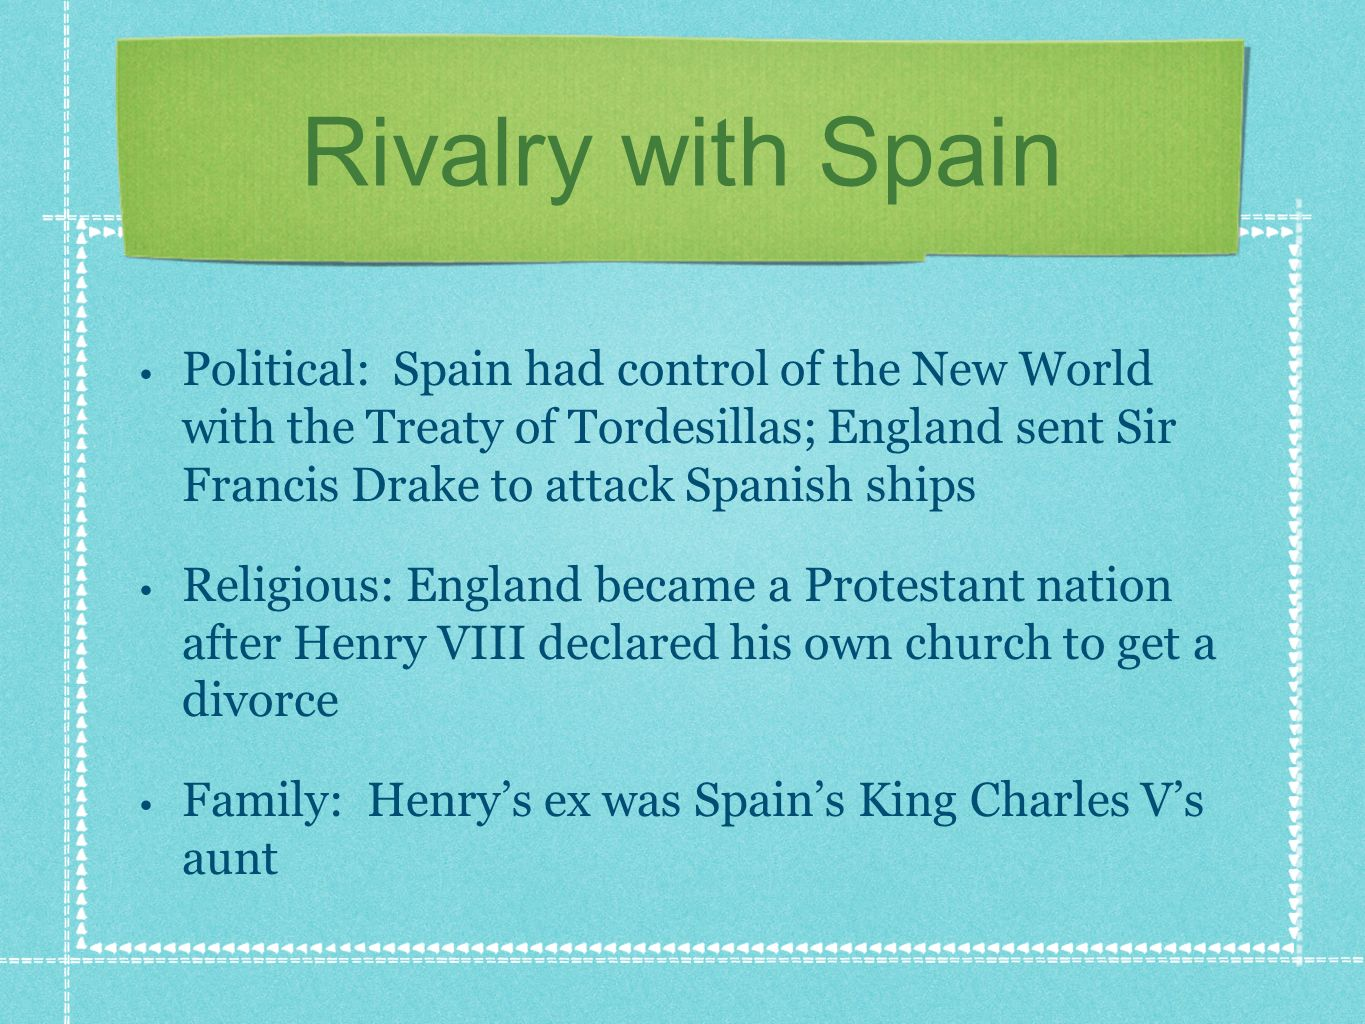 Rivalry with Spain